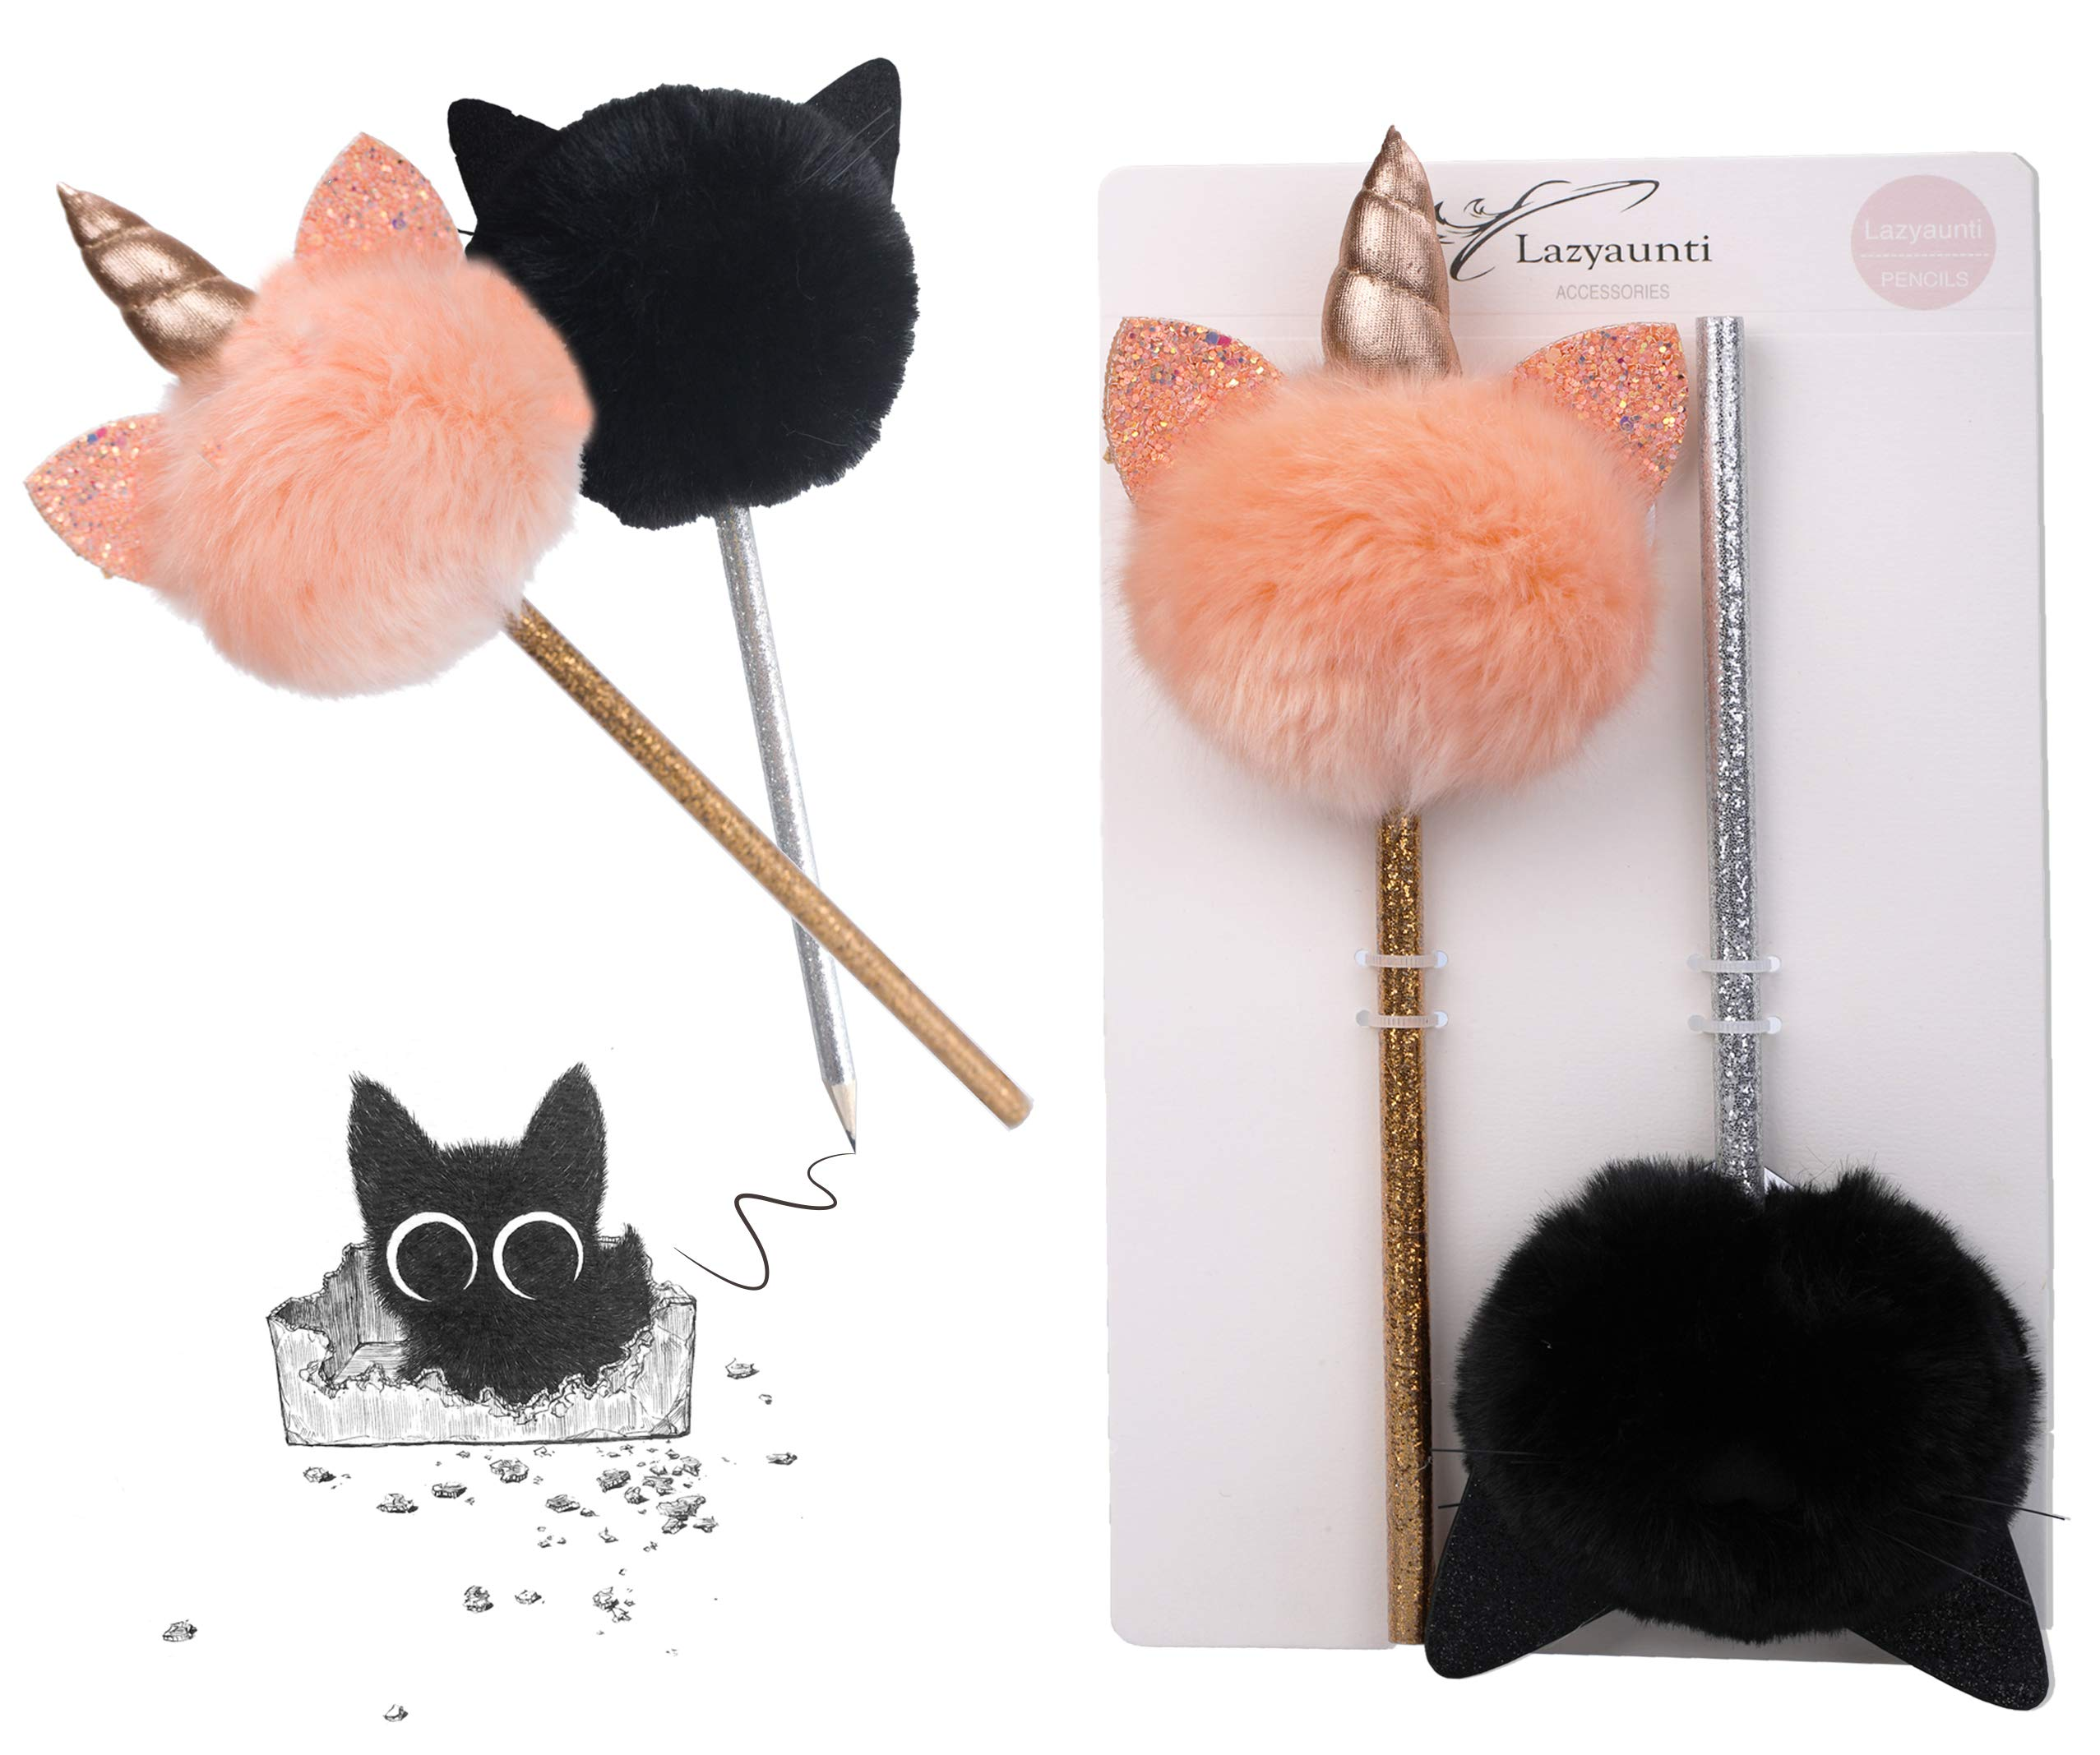 Lazyaunti Cute Fluffy Pencils for Kids Fancy Fun Pencil Toppers Plush Ball Classroom Gift PersonalizedSchoolSupplies for Girls (Black Cat)